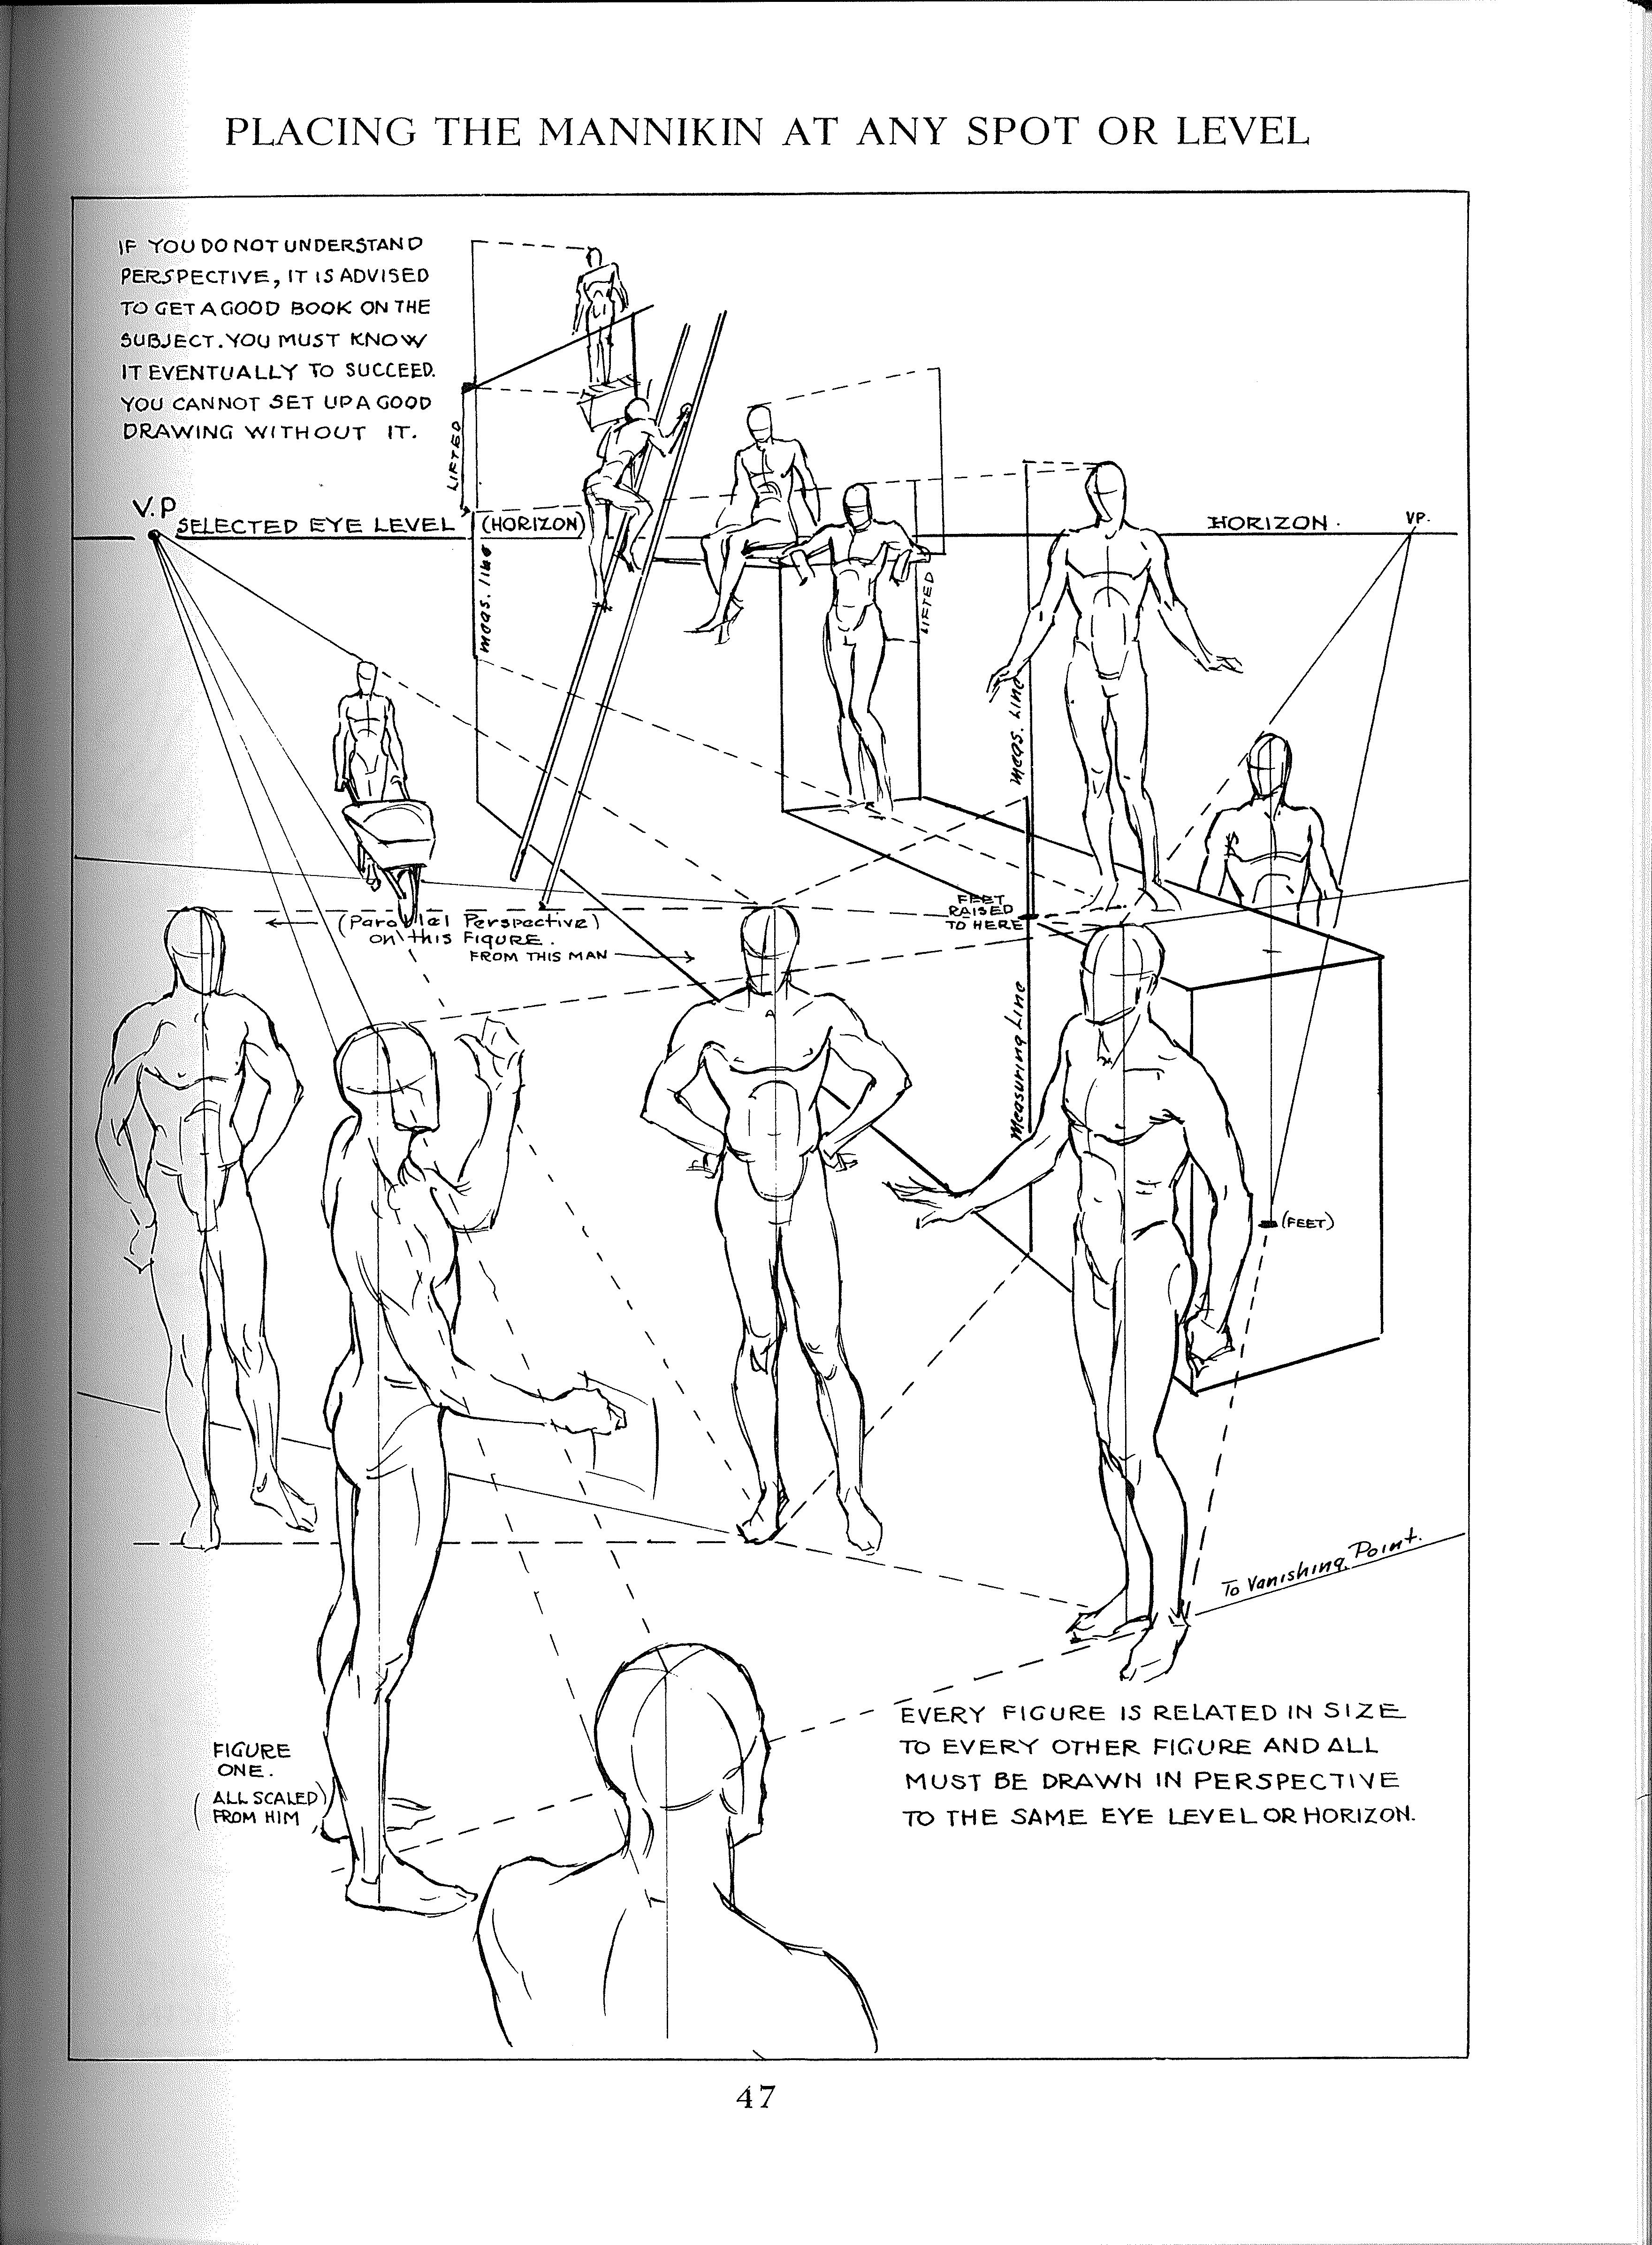 andrew loomis figure drawing perspective figure drawing Figure Profile Diagram andrew loomis figure drawing perspective